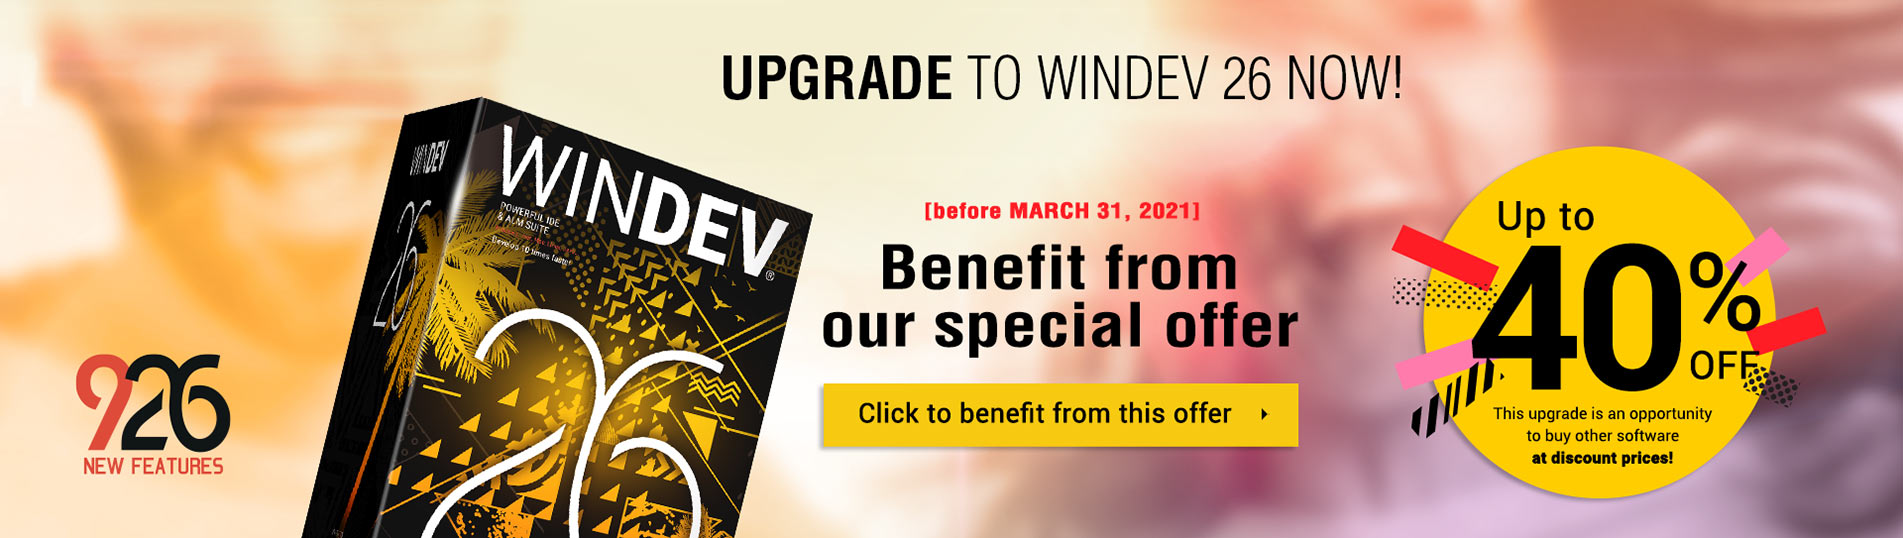 Upgrade to WINDEV 26 now